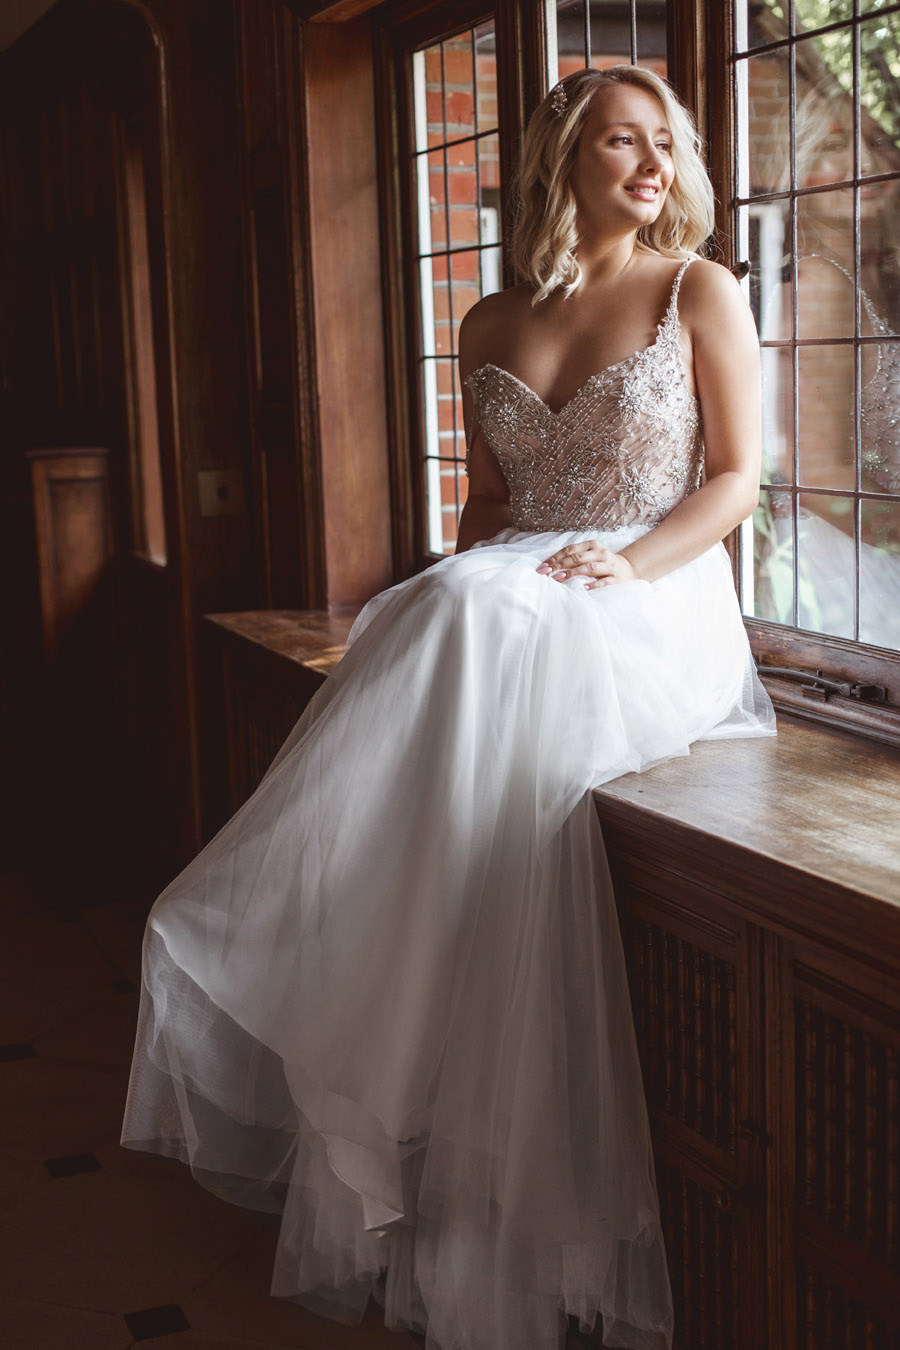 Ye Olde Bell Coaching Inn for a faded beauty wedding style edit with Masha Unwerth (7)